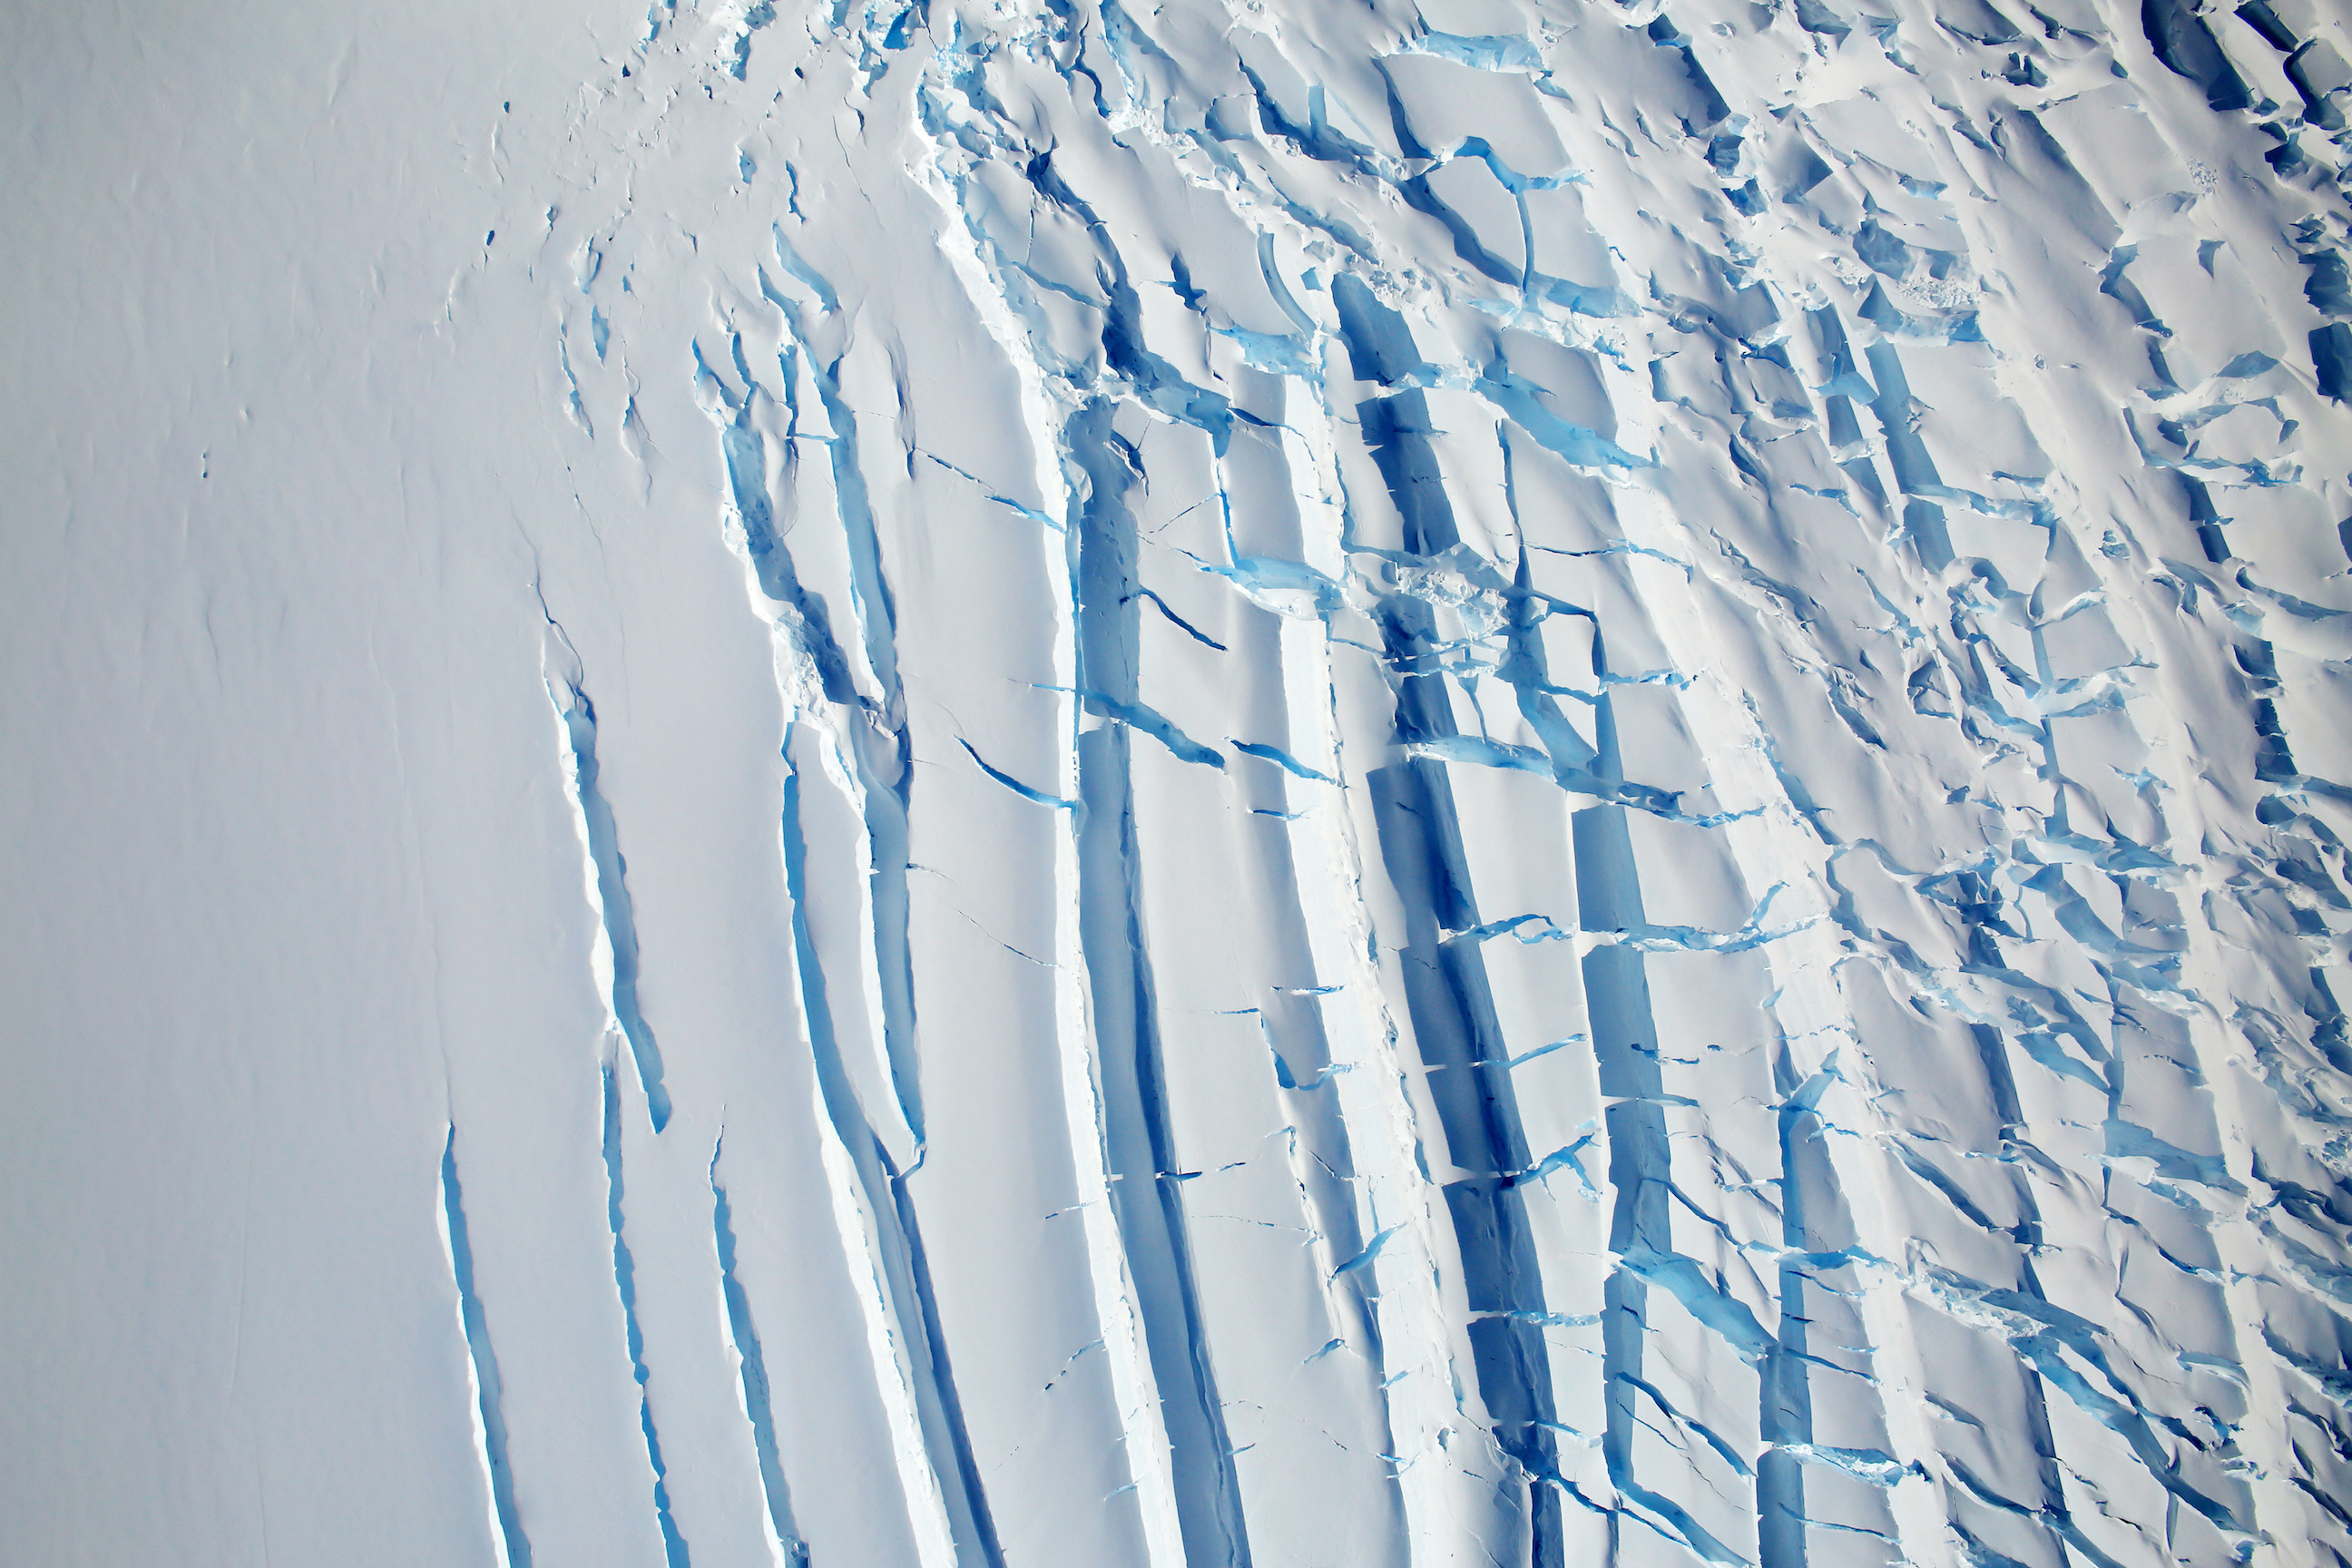 Today's Image of the Day comes from the NASA Earth Observatory and features a look at a heavily-crevassed glacier on the southern Antarctic Peninsula.